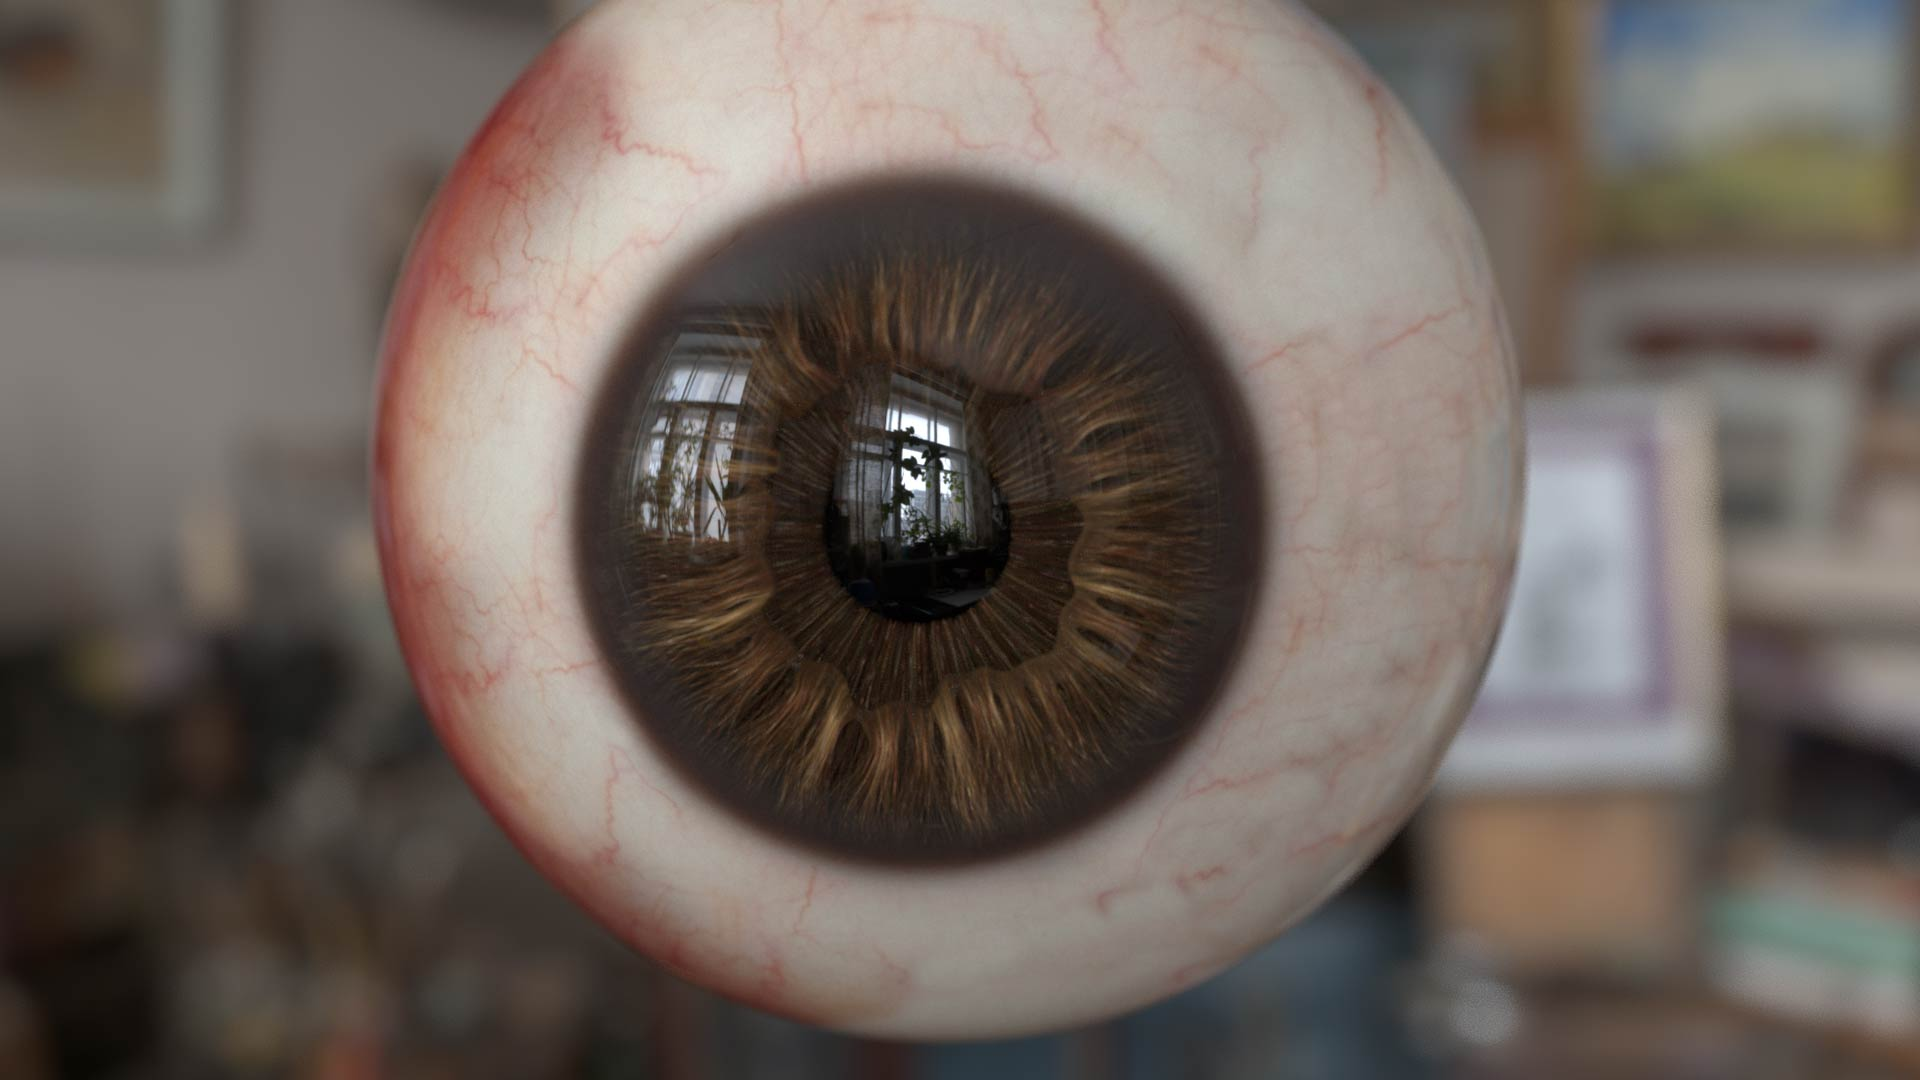 human_eyes_3d_two_layers_zbrush_rendering_braun Realistic Human Eye 3D Model